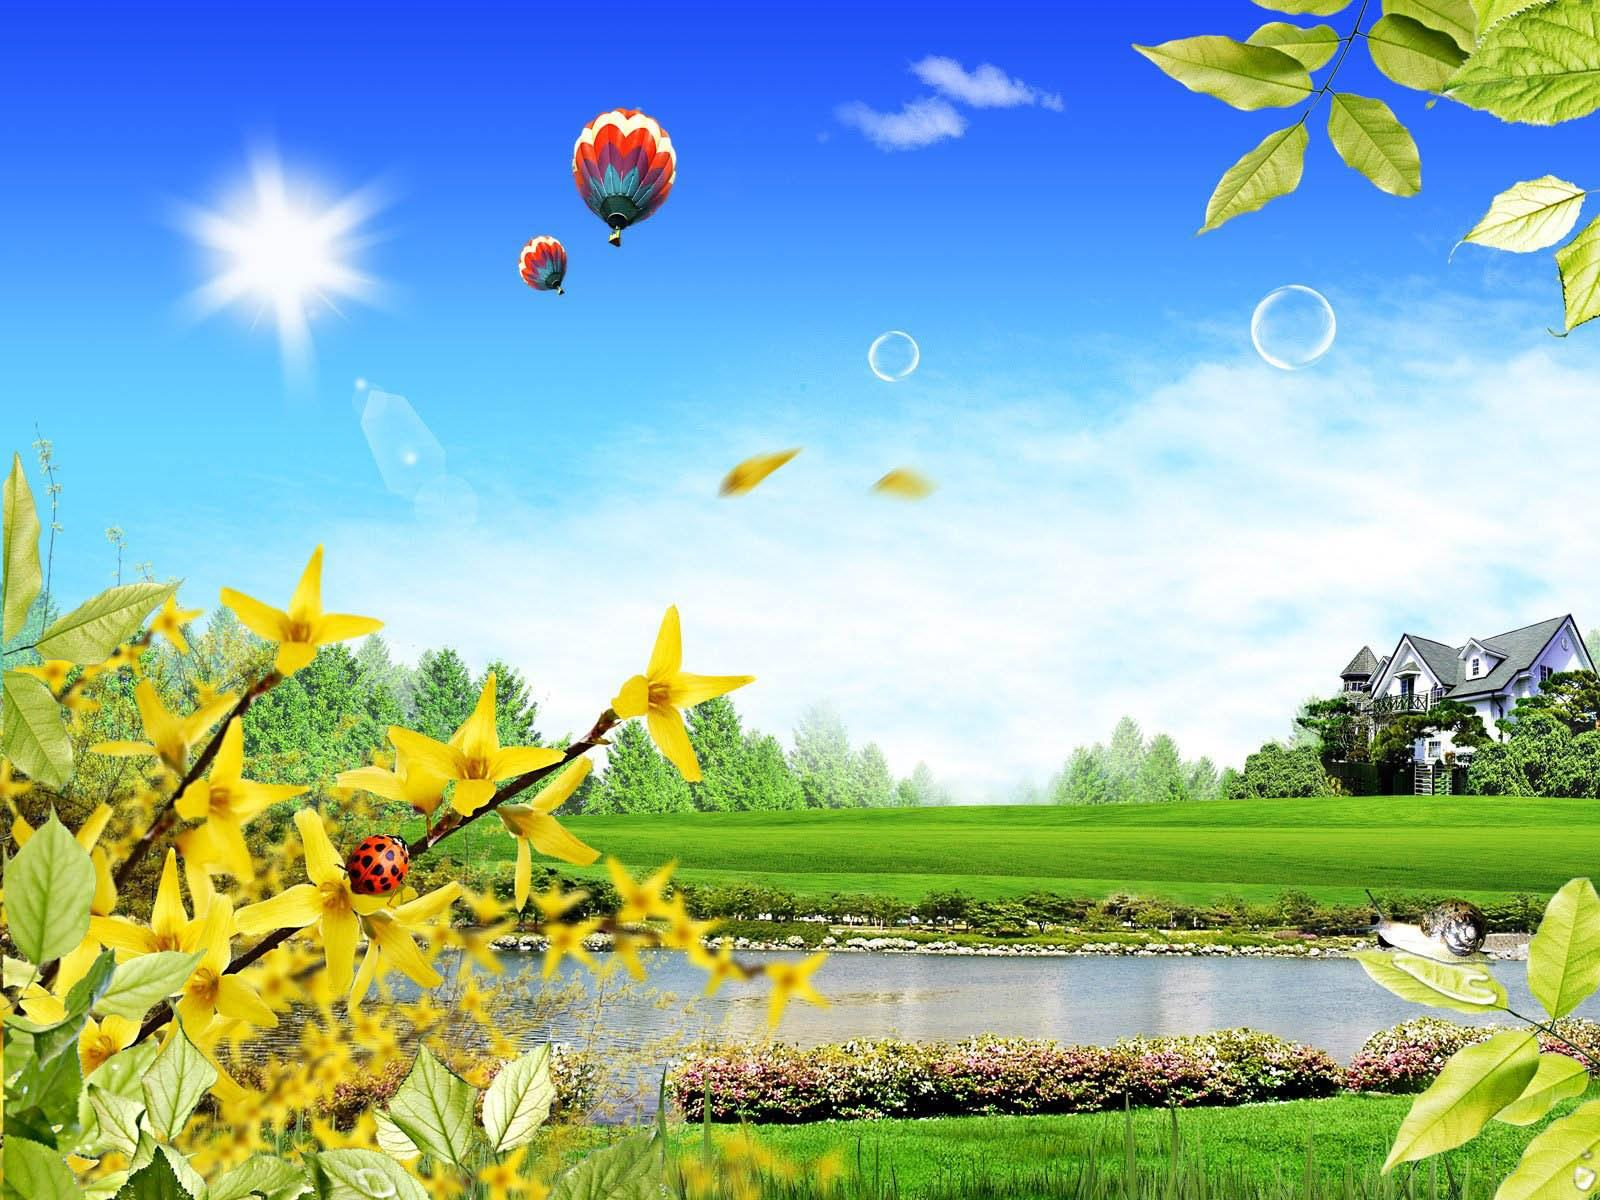 Beautiful Summer 1600x1200 Wallpapers 1600x1200 Wallpapers Pictures 1600x1200